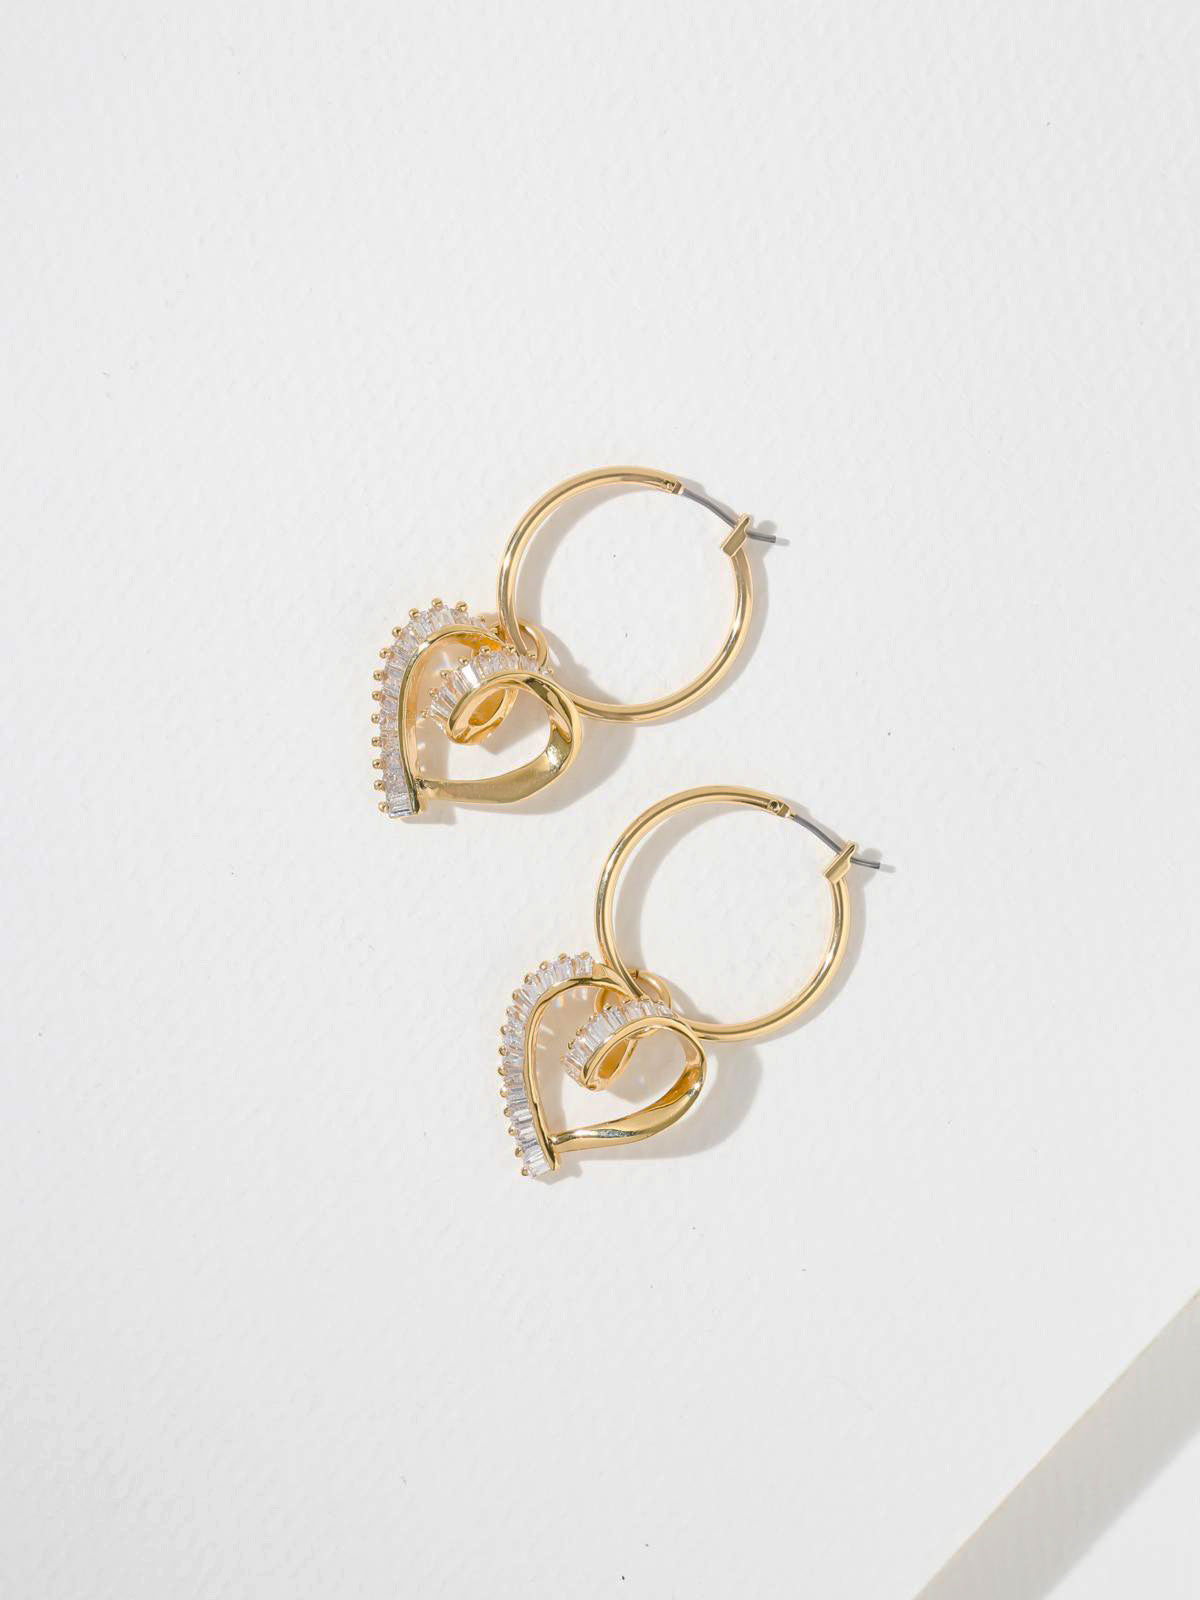 The Trance Heart Earrings